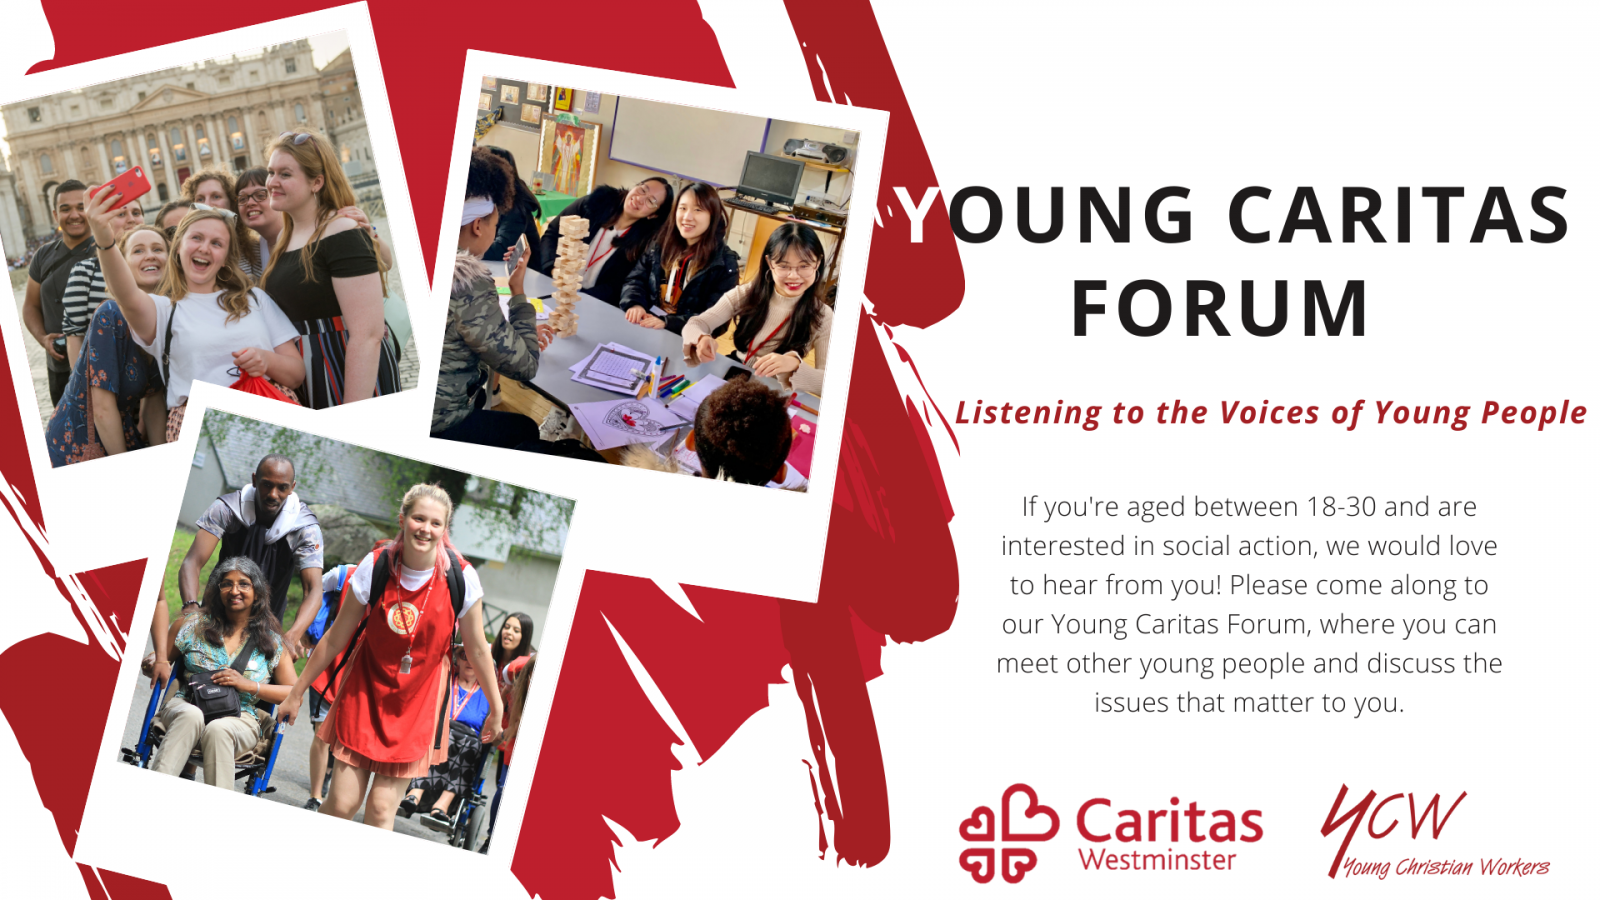 Caritas Westminster launches Young Caritas Forum - Diocese of Westminster